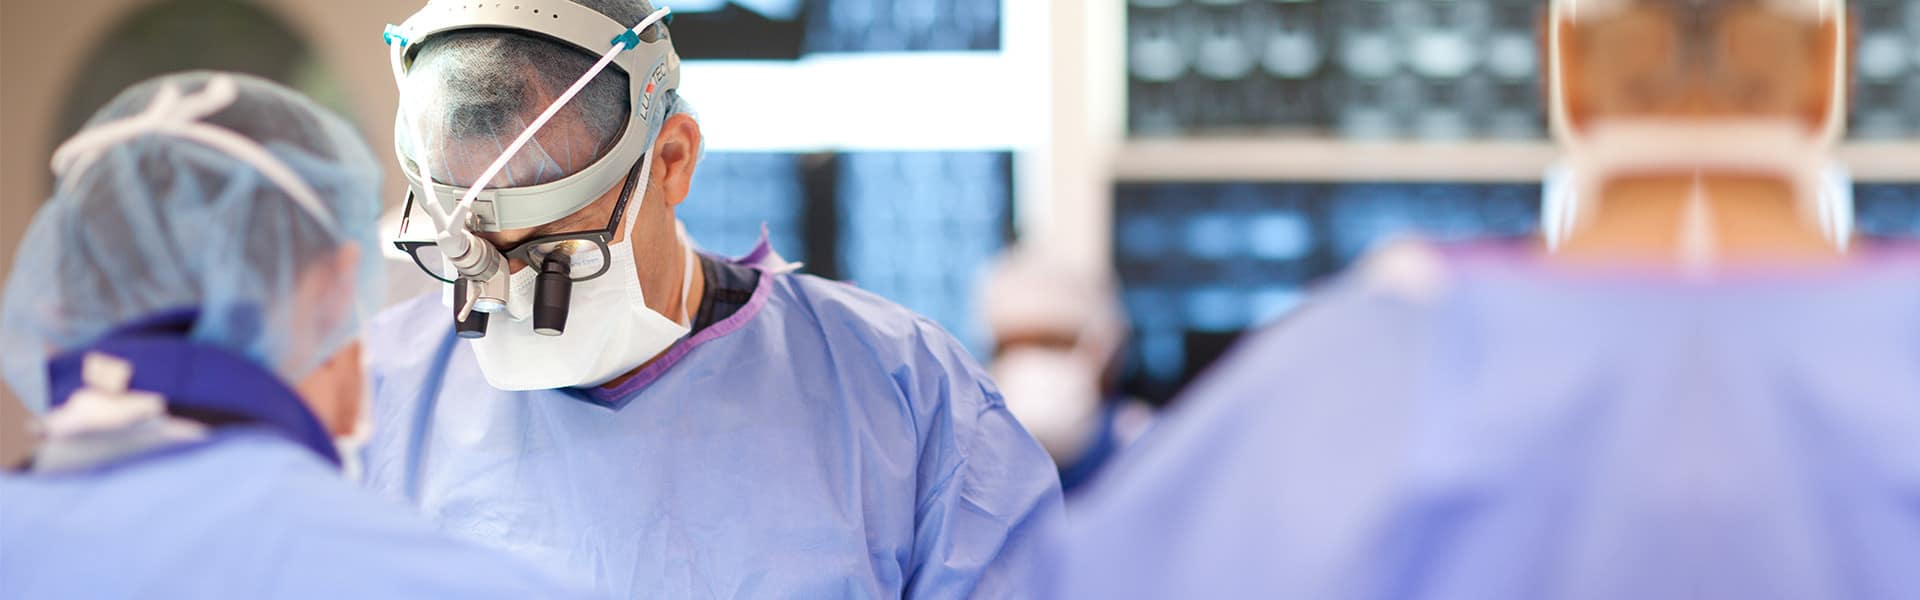 Orthopedic surgeon, Andrew Hecht, performing surgical spine procedure